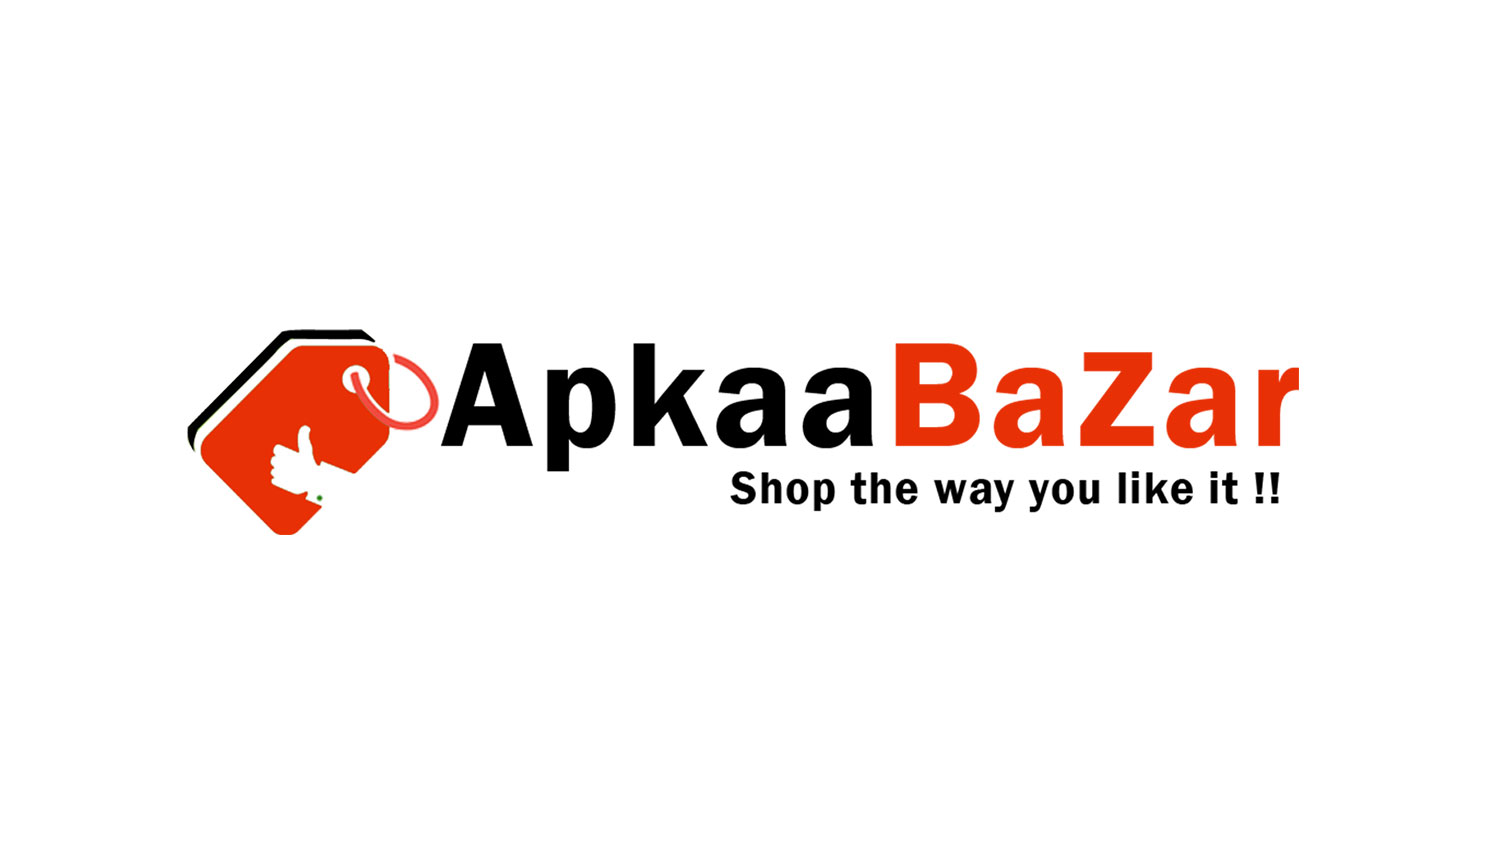 Apkaabazar-Coupons, Promo Codes, Offers,Coupon Codes, Mobile Smartphones Price